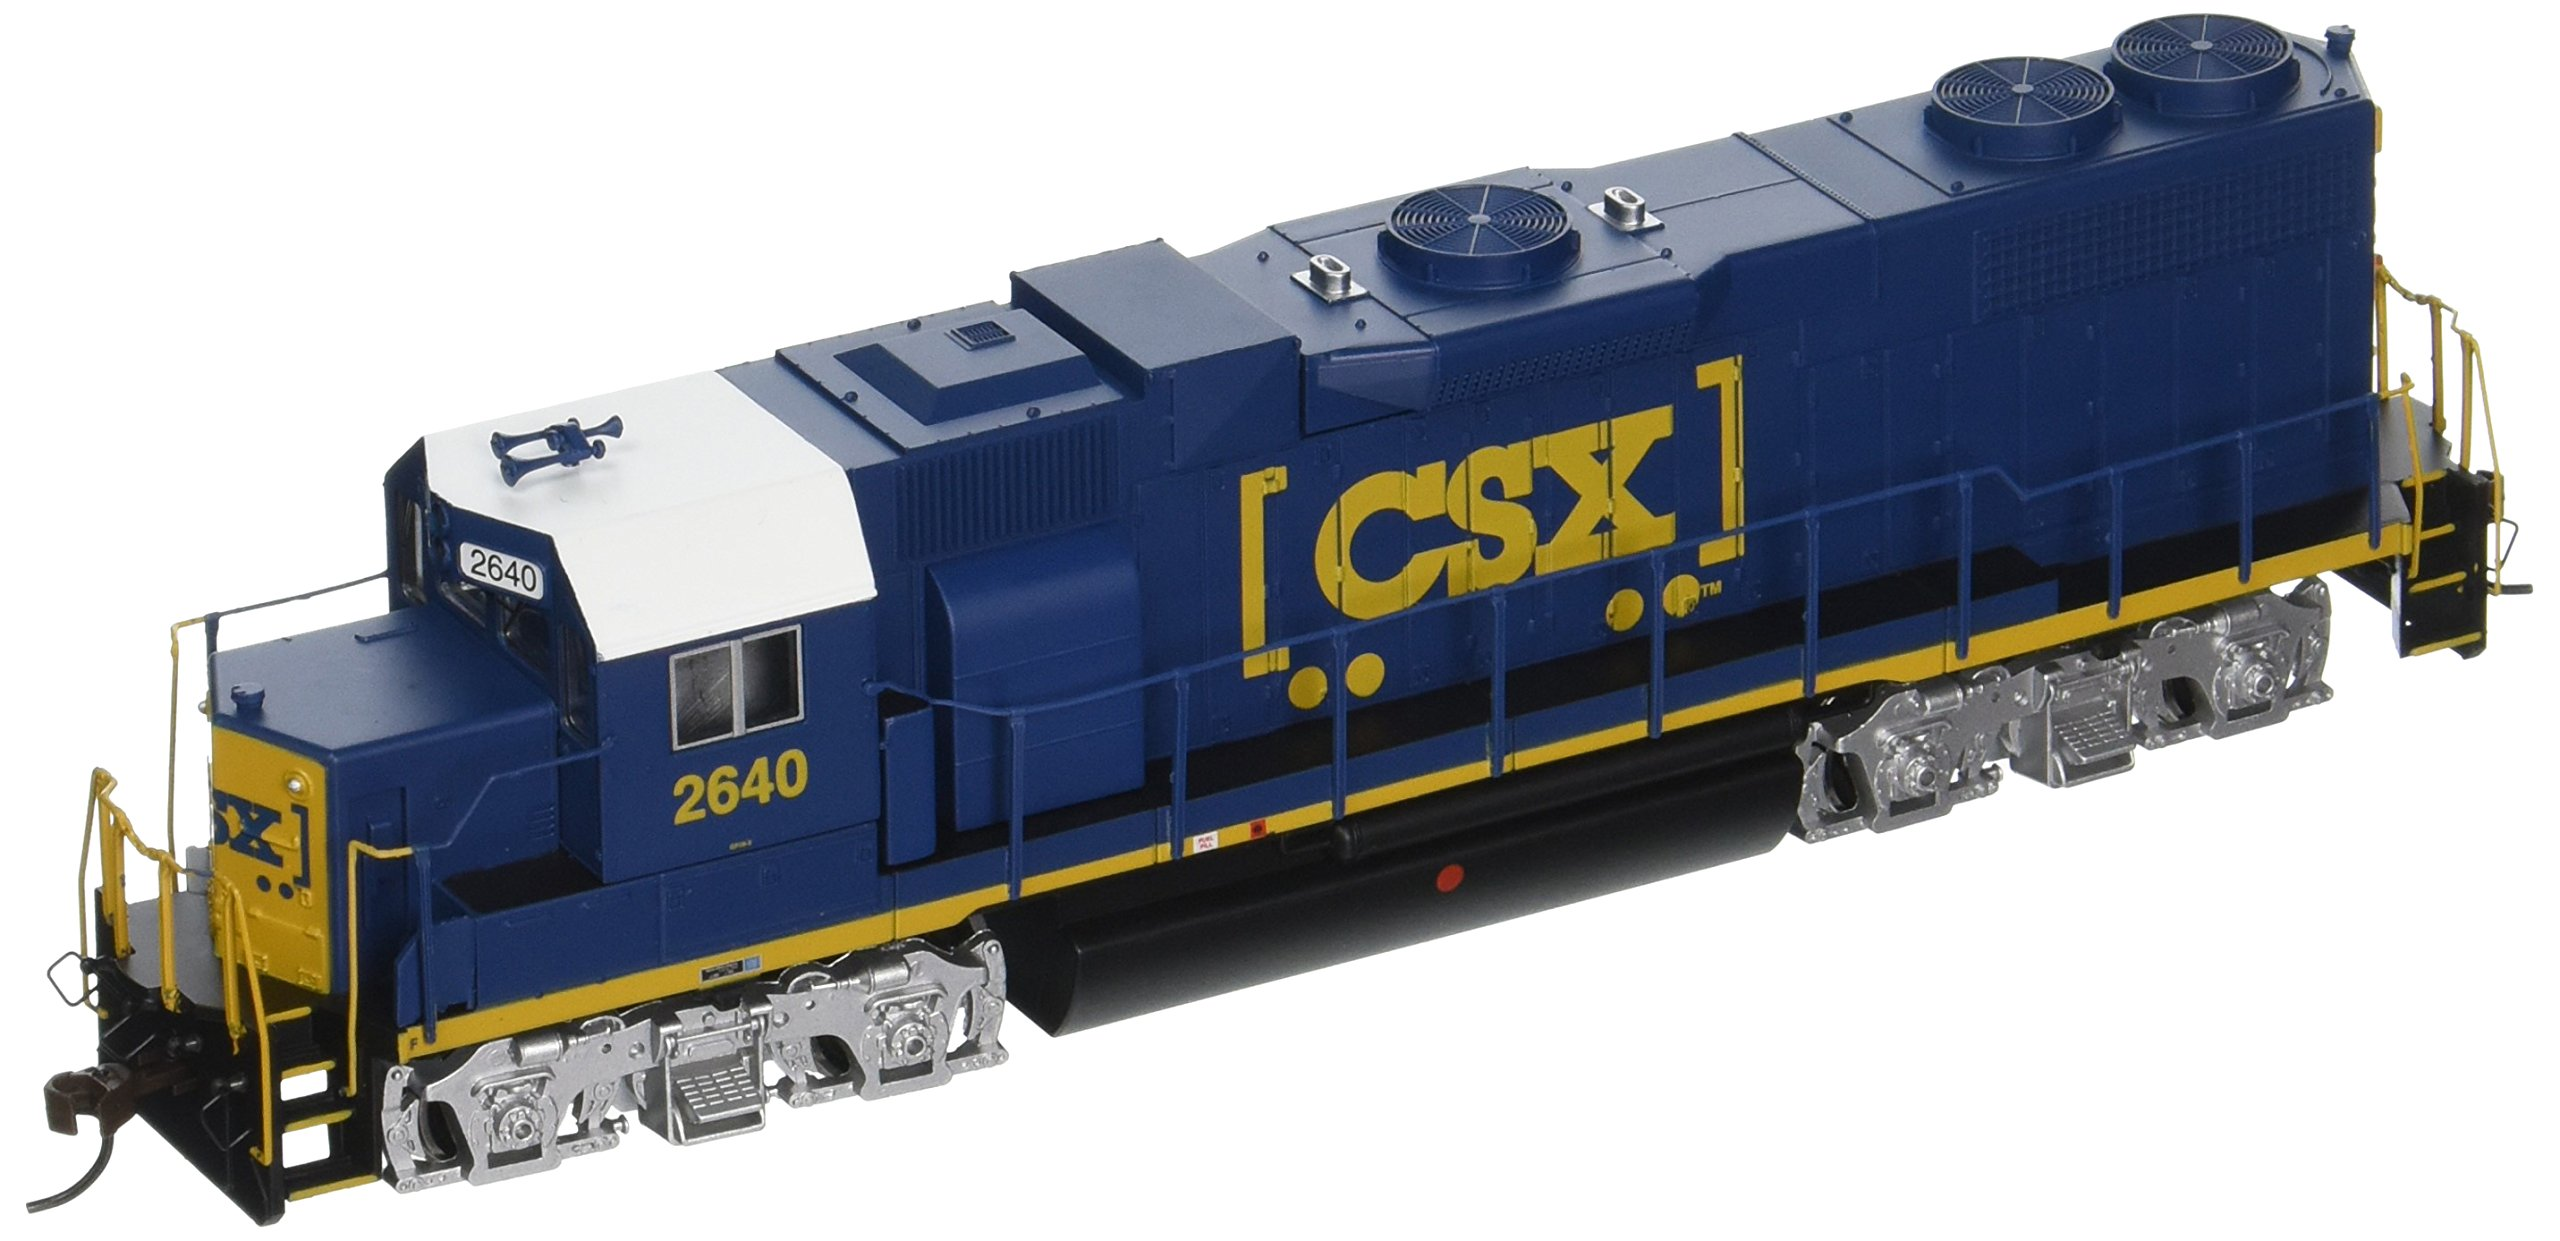 Bachmann Industries EMD GP38 2 DCC CSX #2640 Sound Value Equipped Locomotive (HO Scale) by Bachmann Trains (Image #2)